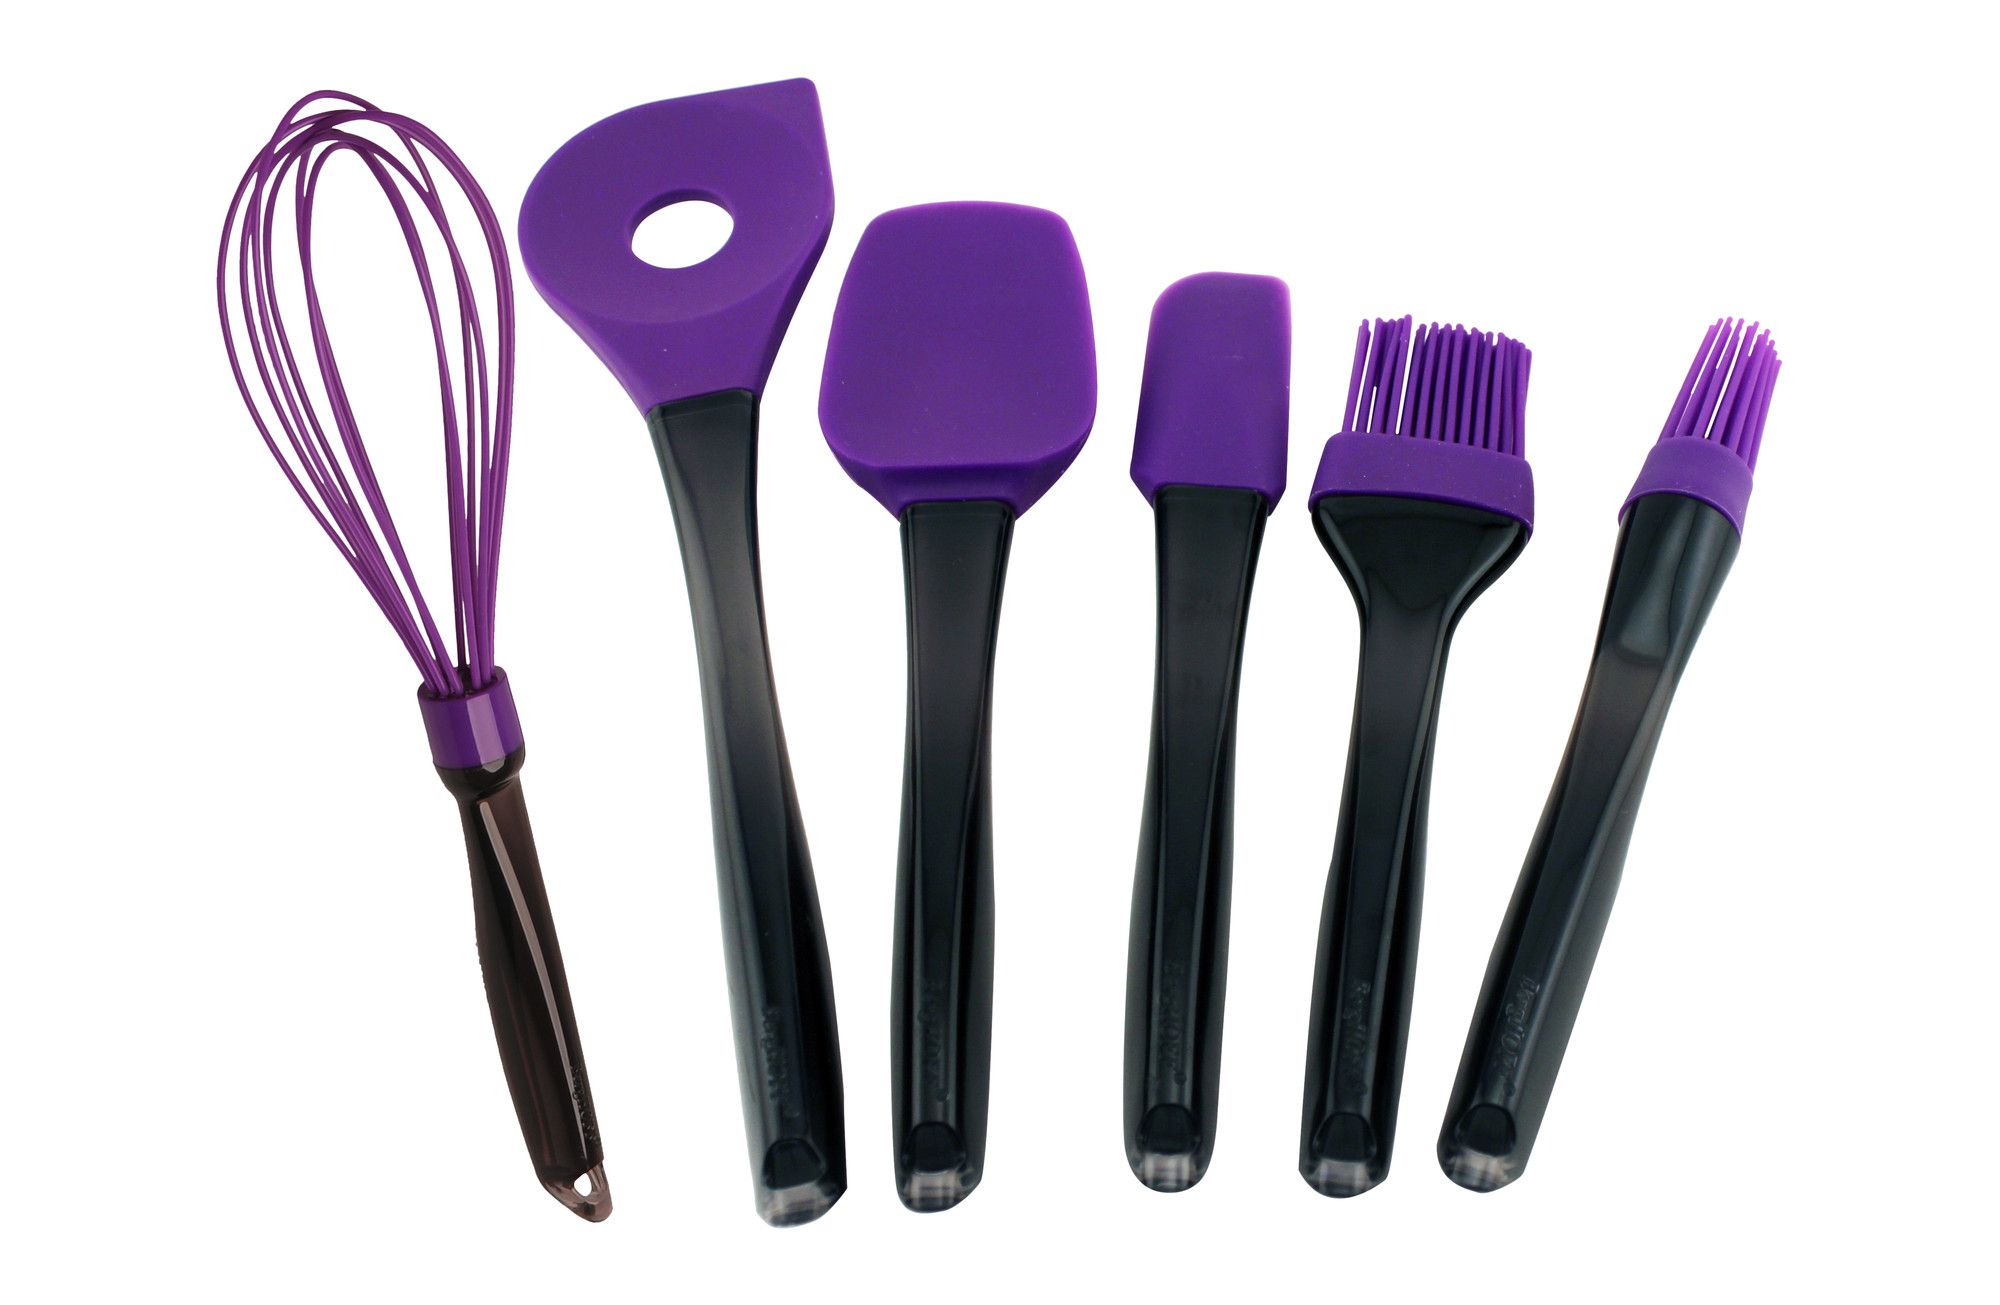 Lila Küchenutensilien Geminis 6 Piece Kitchen Utensil Set Products Pinterest